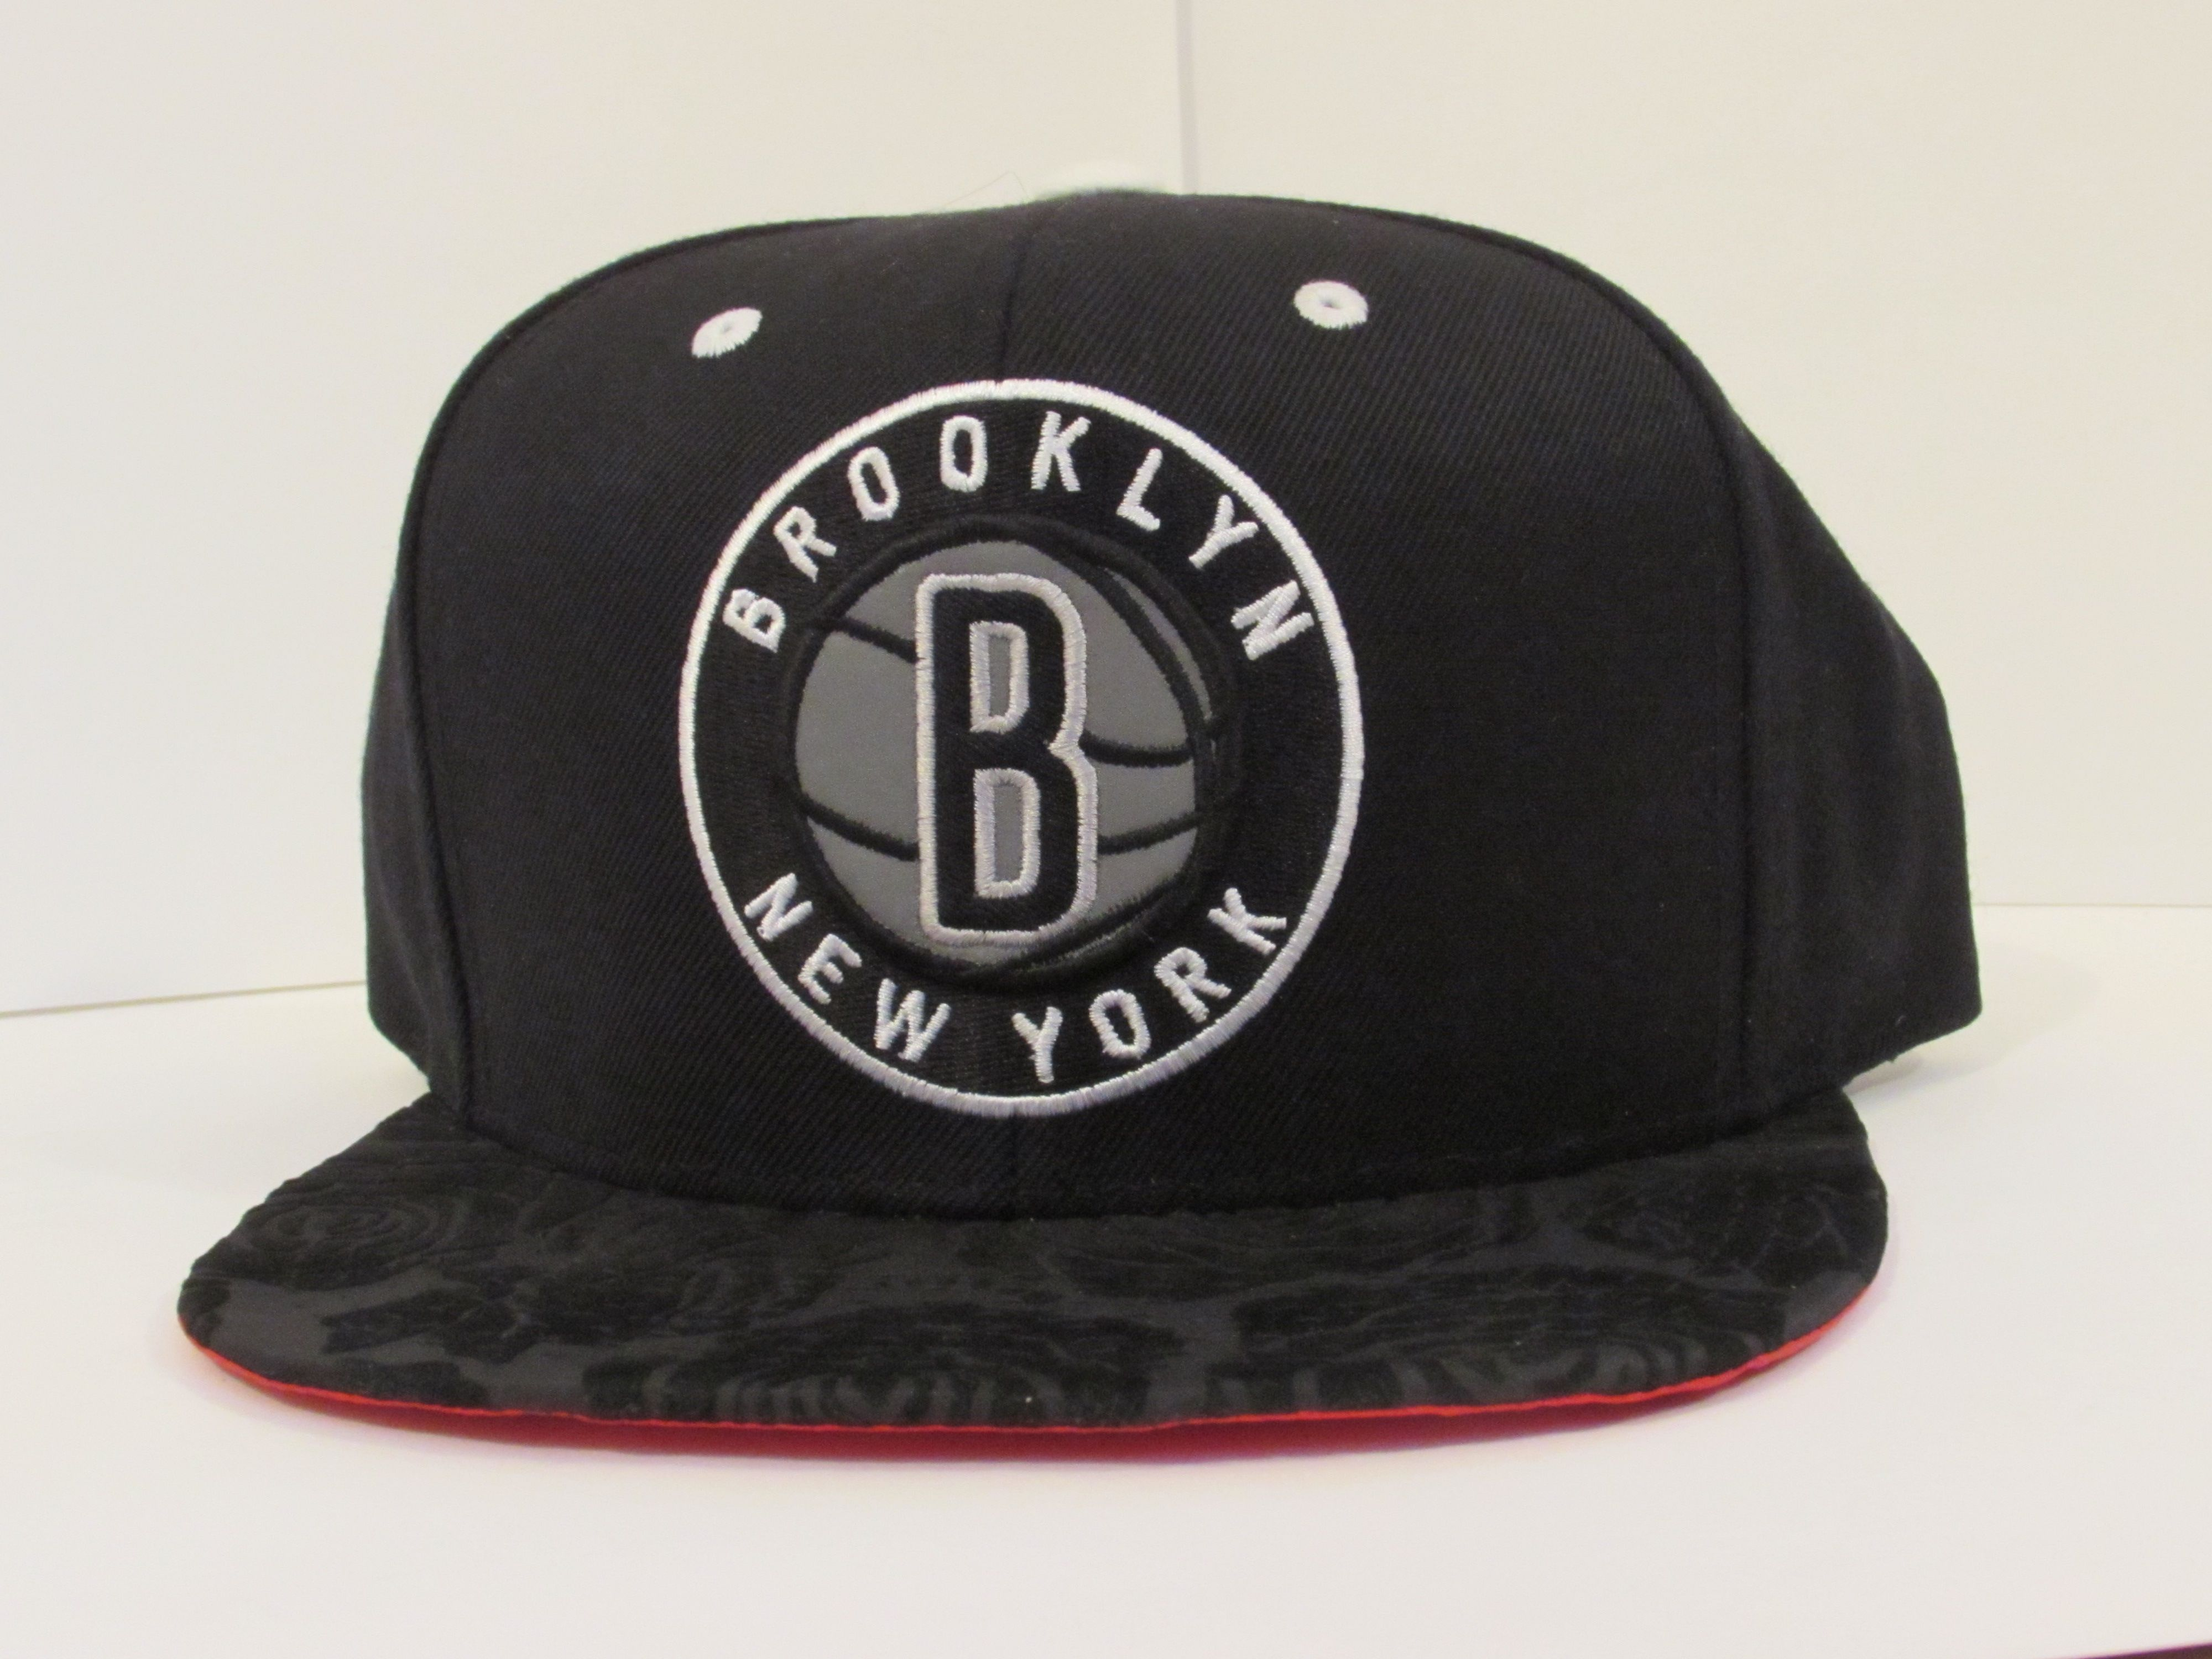 buy online 4210e c6ad9 ... switzerland authentic mitchell ness brooklyn nets 3m snapback with  xclusivesnaps brim and red underbrim xclusivesnaps mitchellness